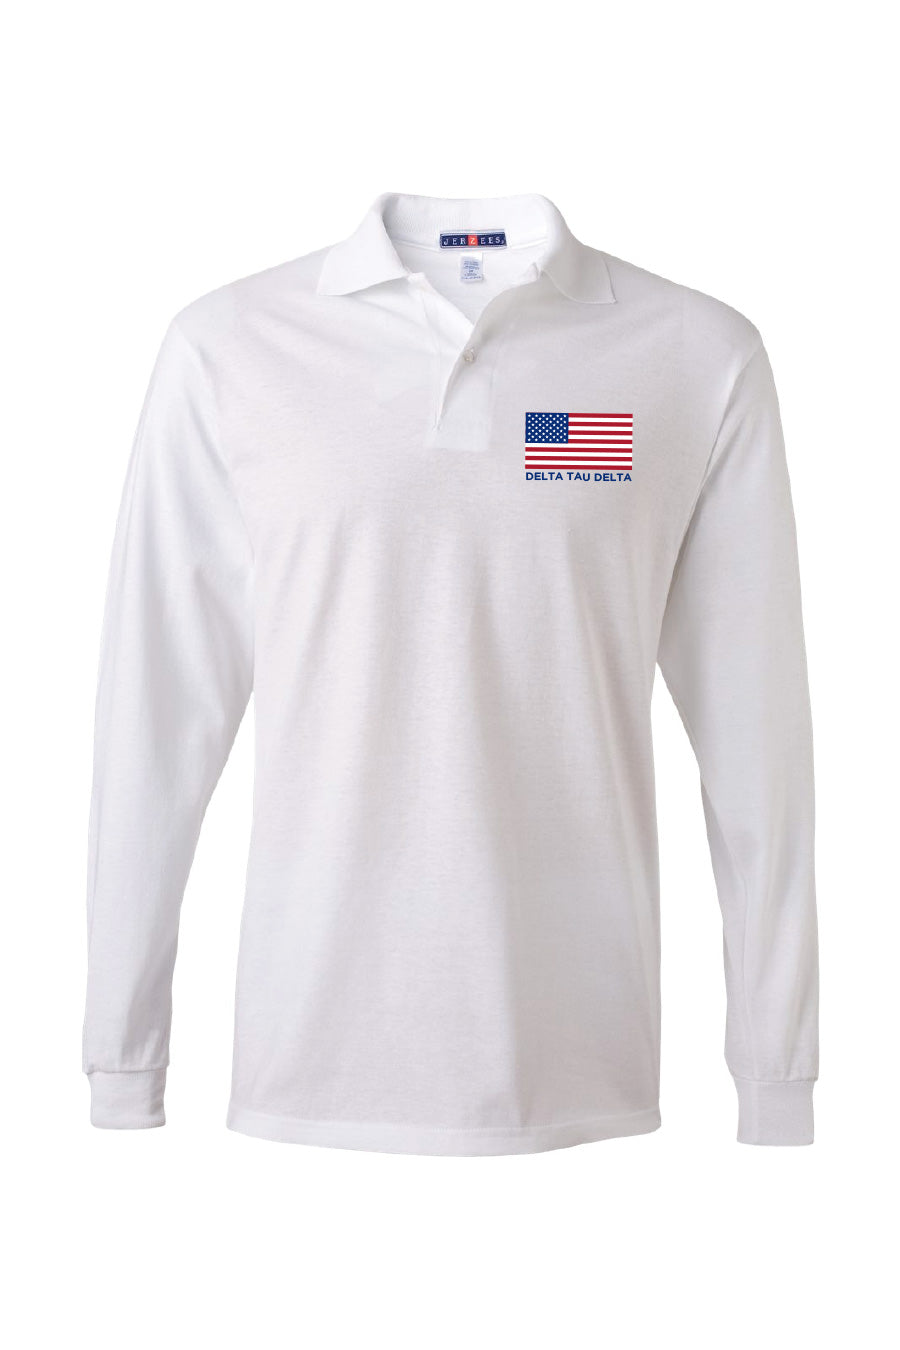 Home the Brave LS Sport Shirt